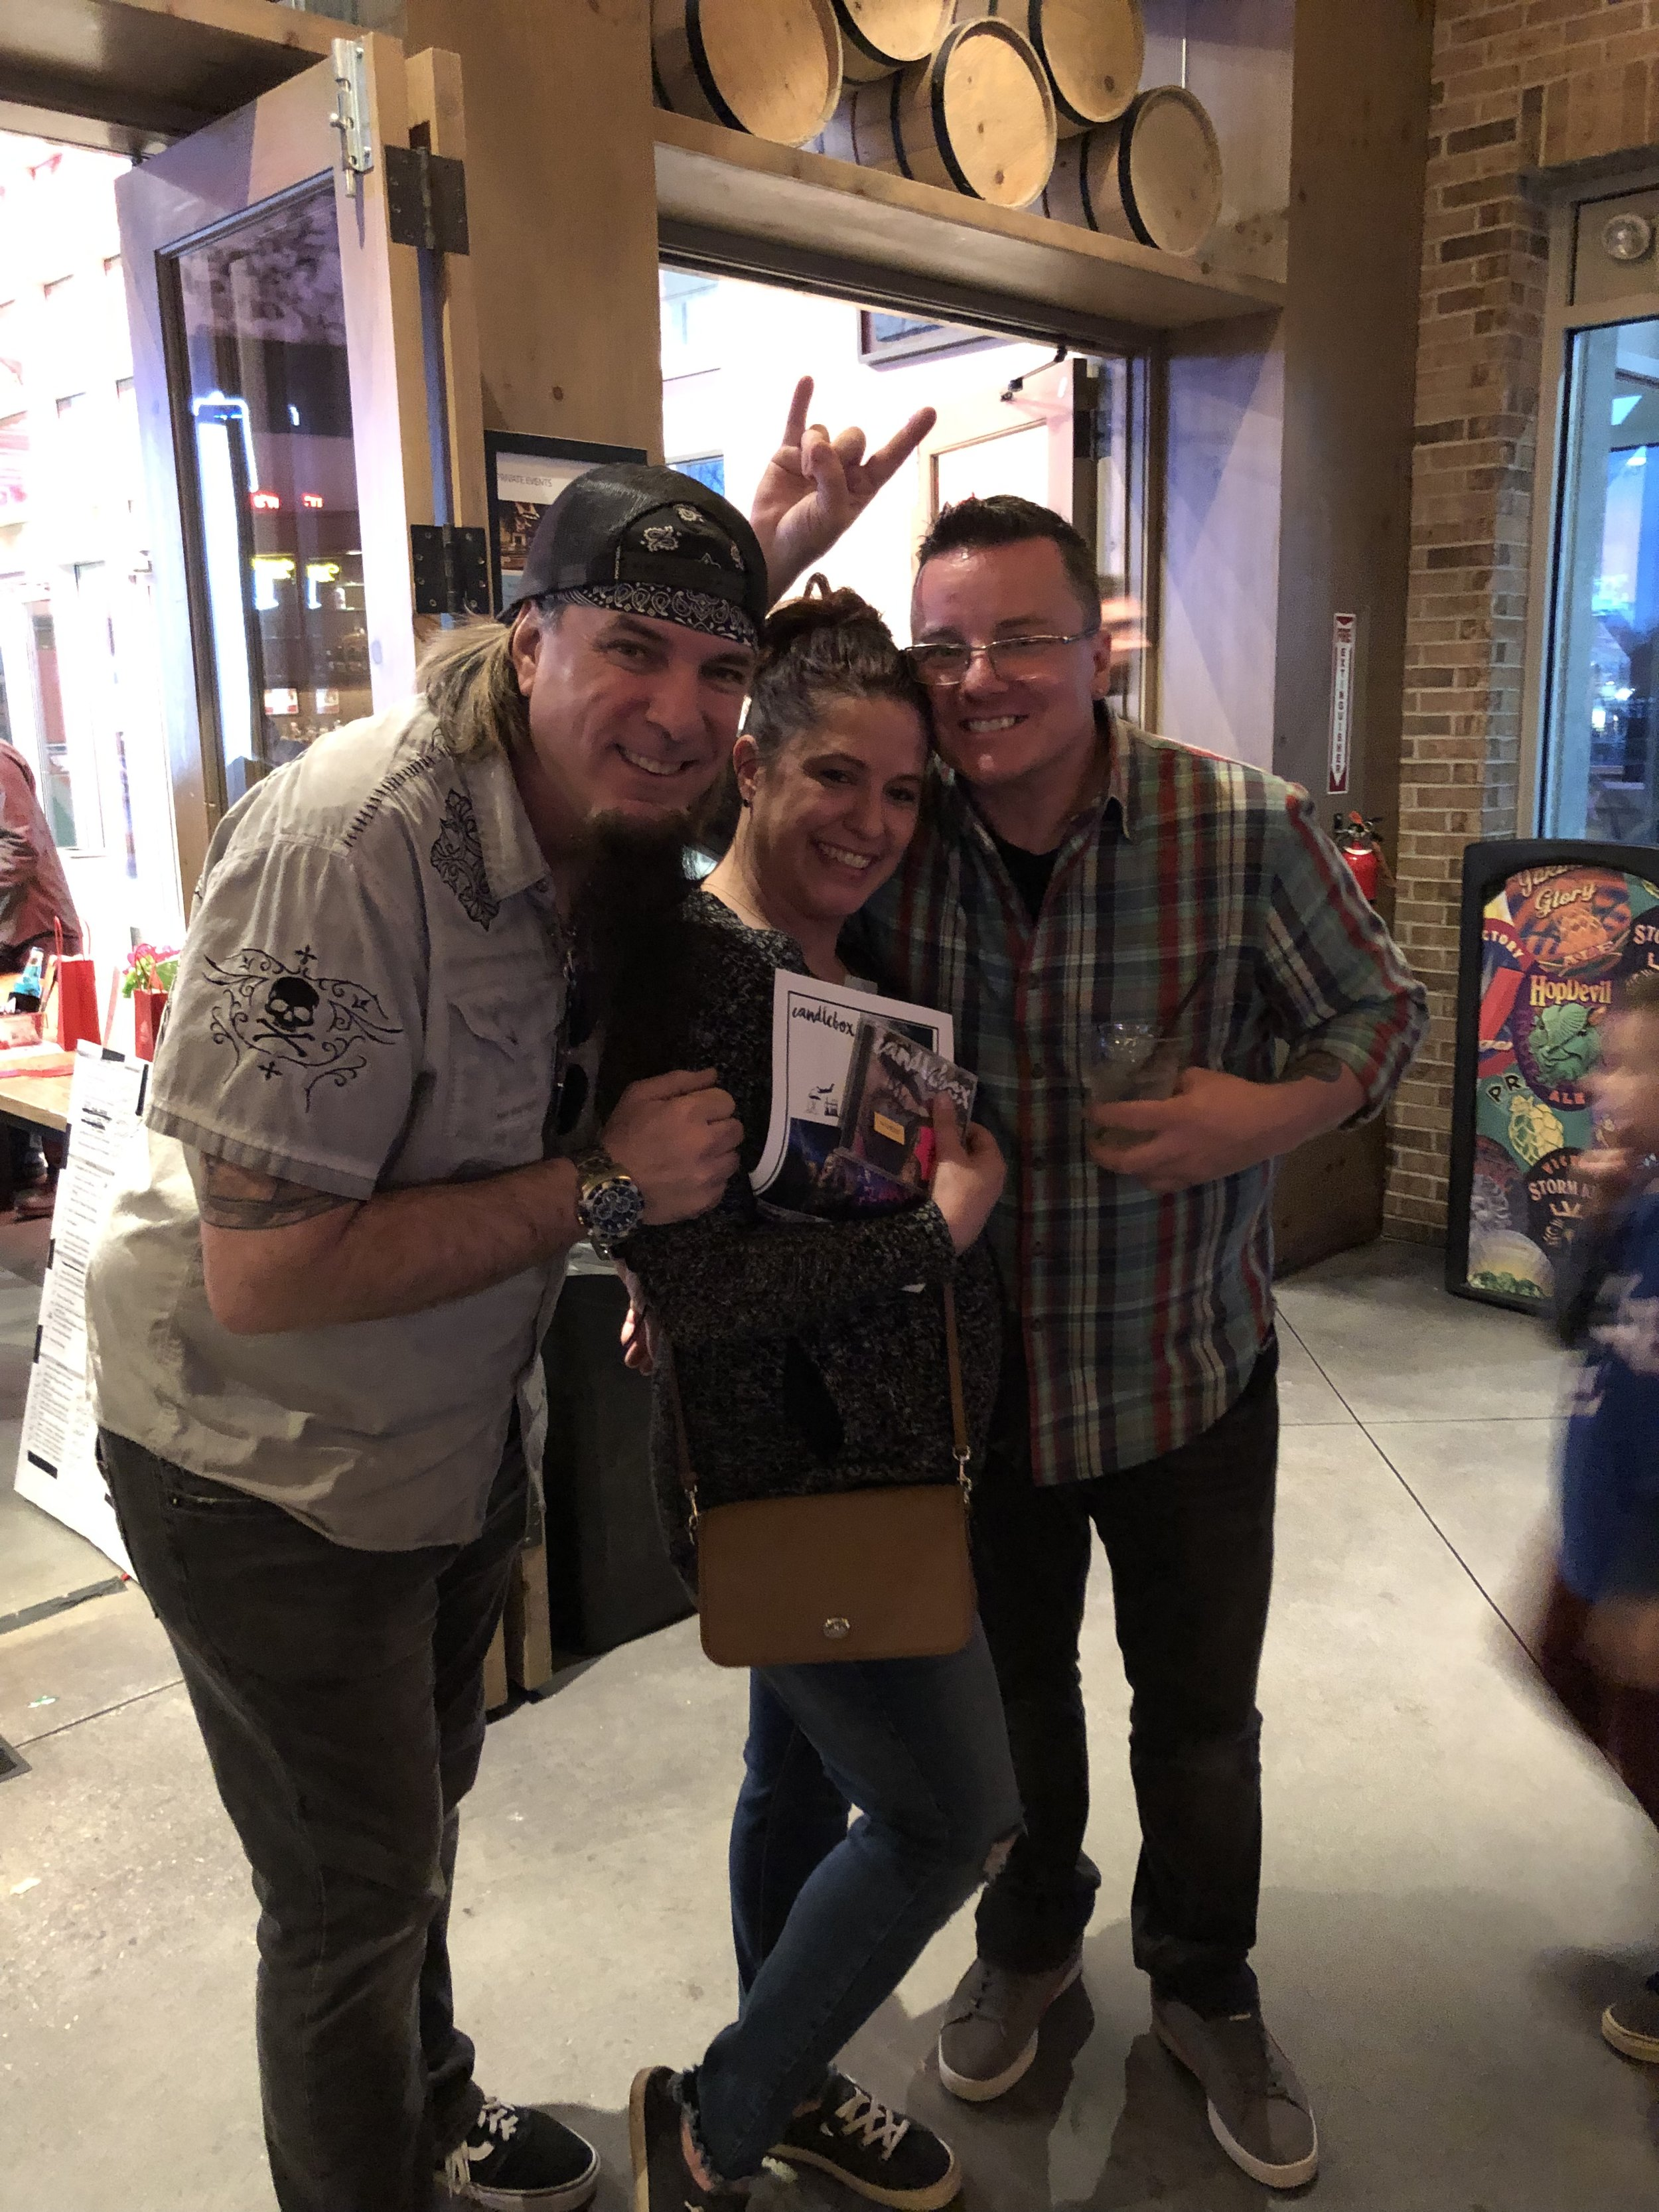 Katiebird (middle) won 2 tickets to Candlebox with a backstage meet and greet, plus an autographed CD.  (pictured with Bobby Pirylis, left, and Richie Yusko, right)